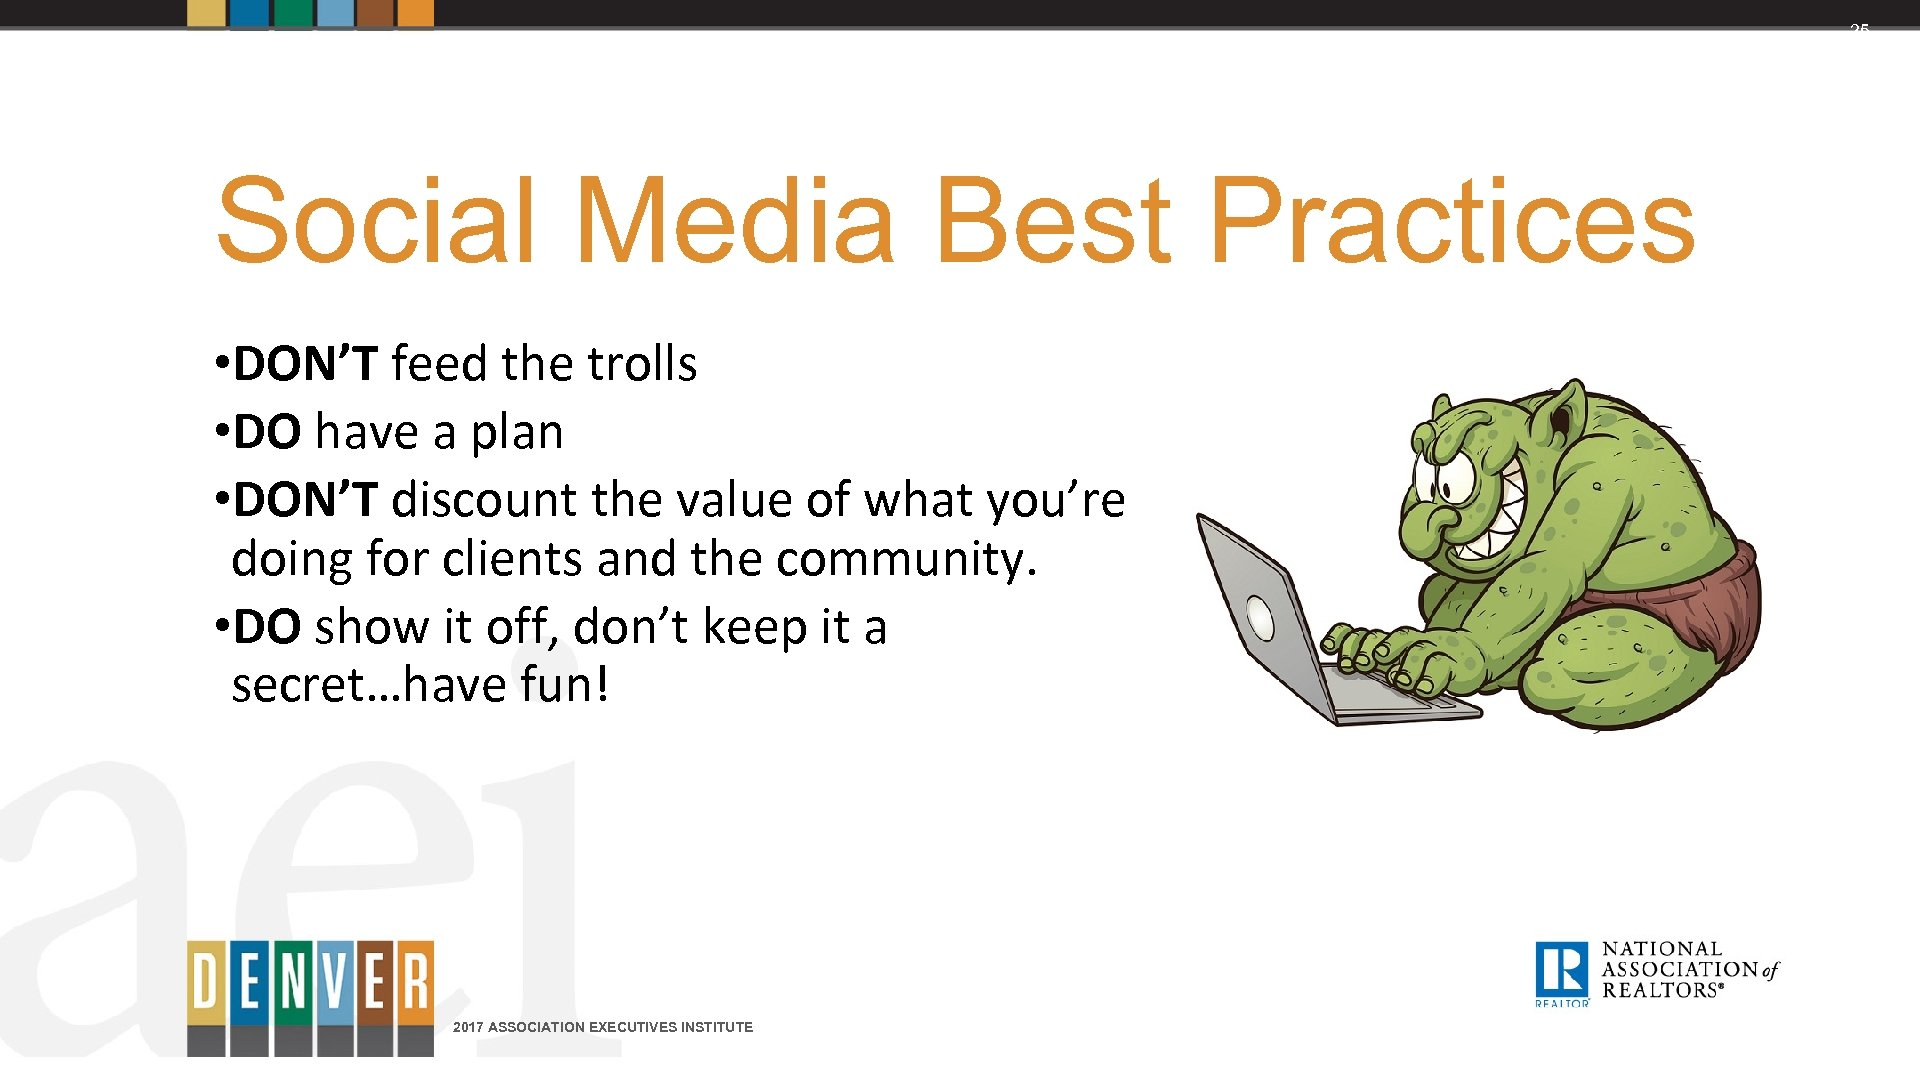 25 Social Media Best Practices • DON'T feed the trolls • DO have a